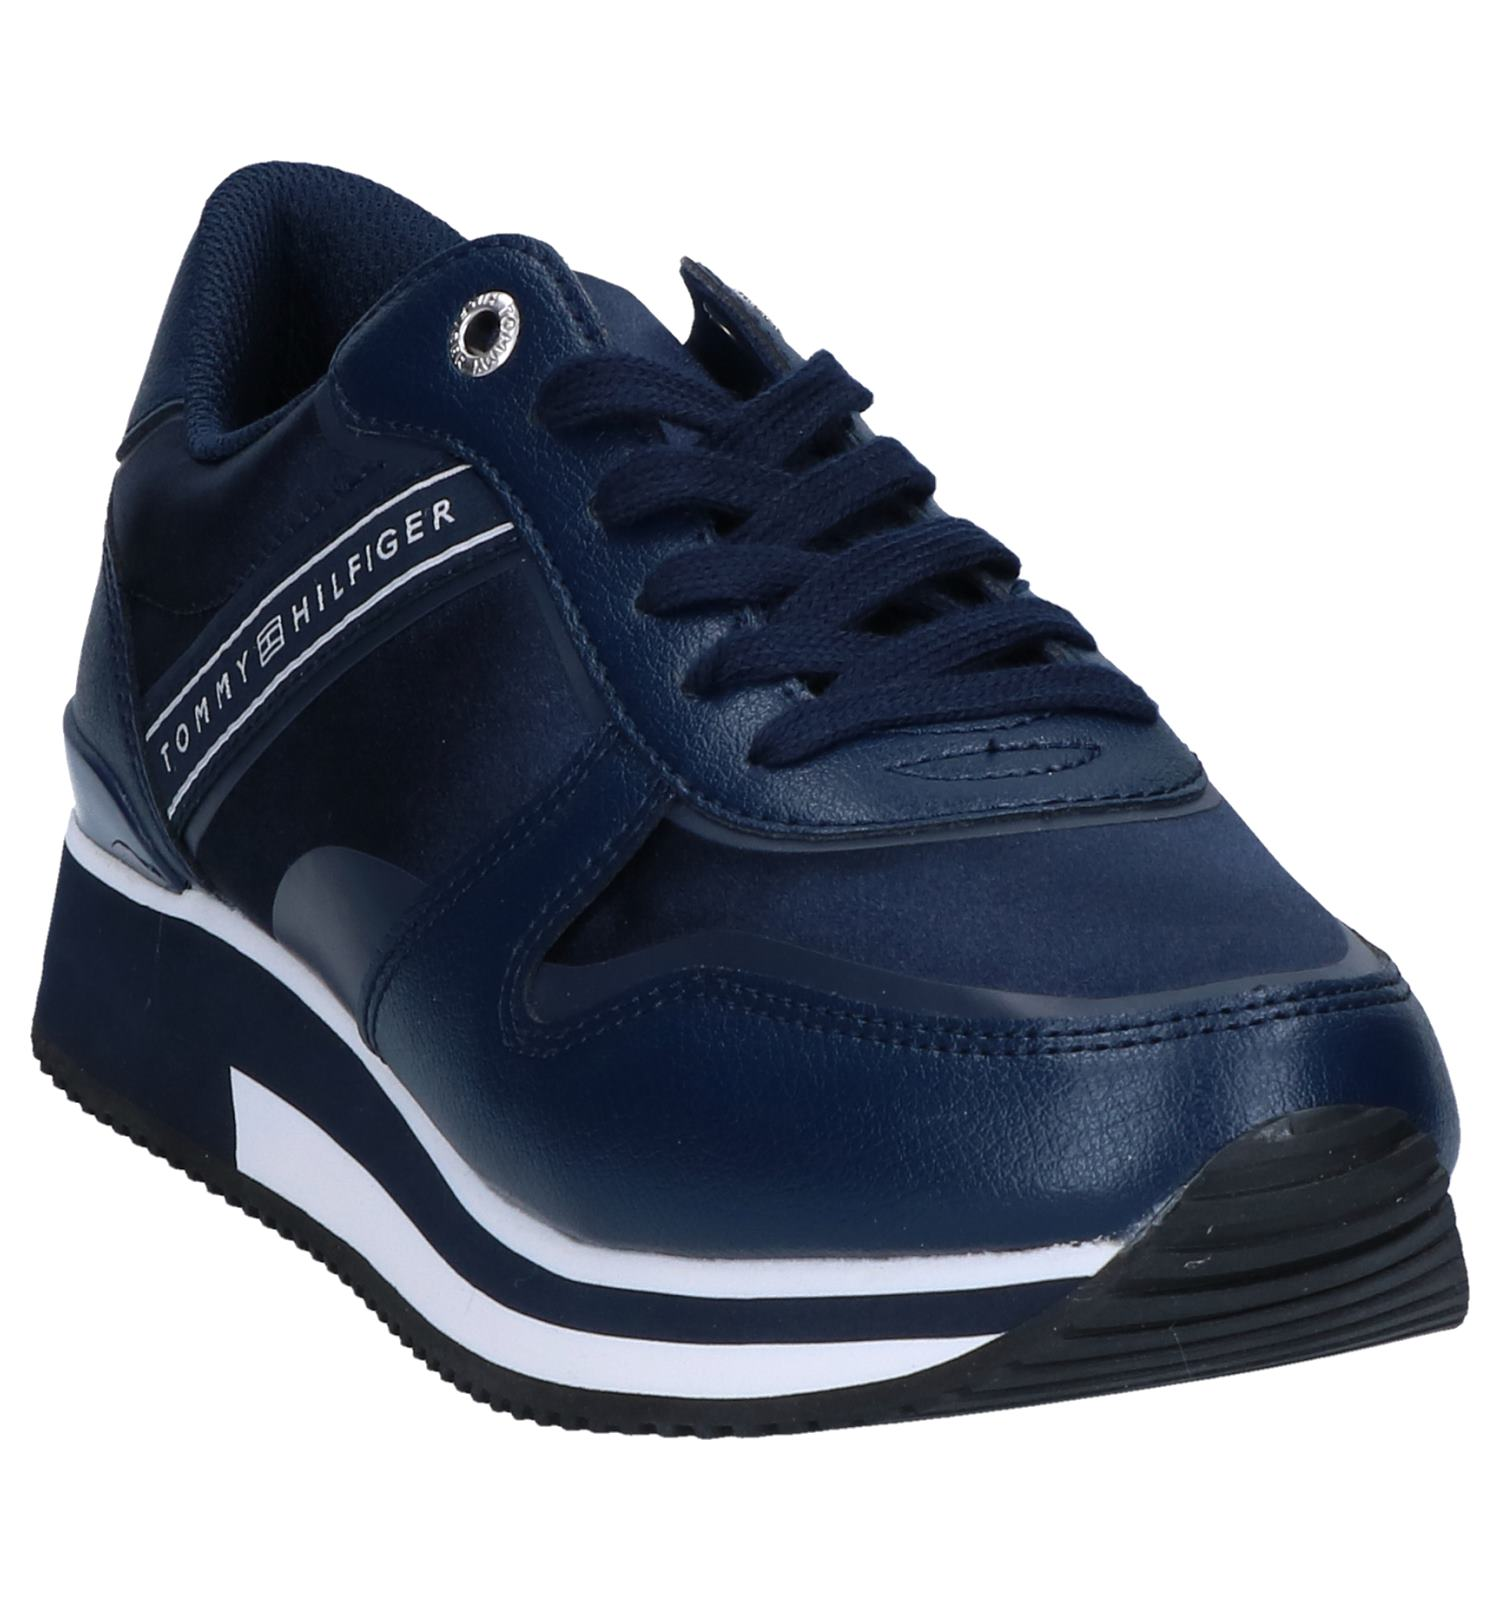 Mixed Sneakers Active Hilfiger City Tommy Blauwe hBxtsrdCQo